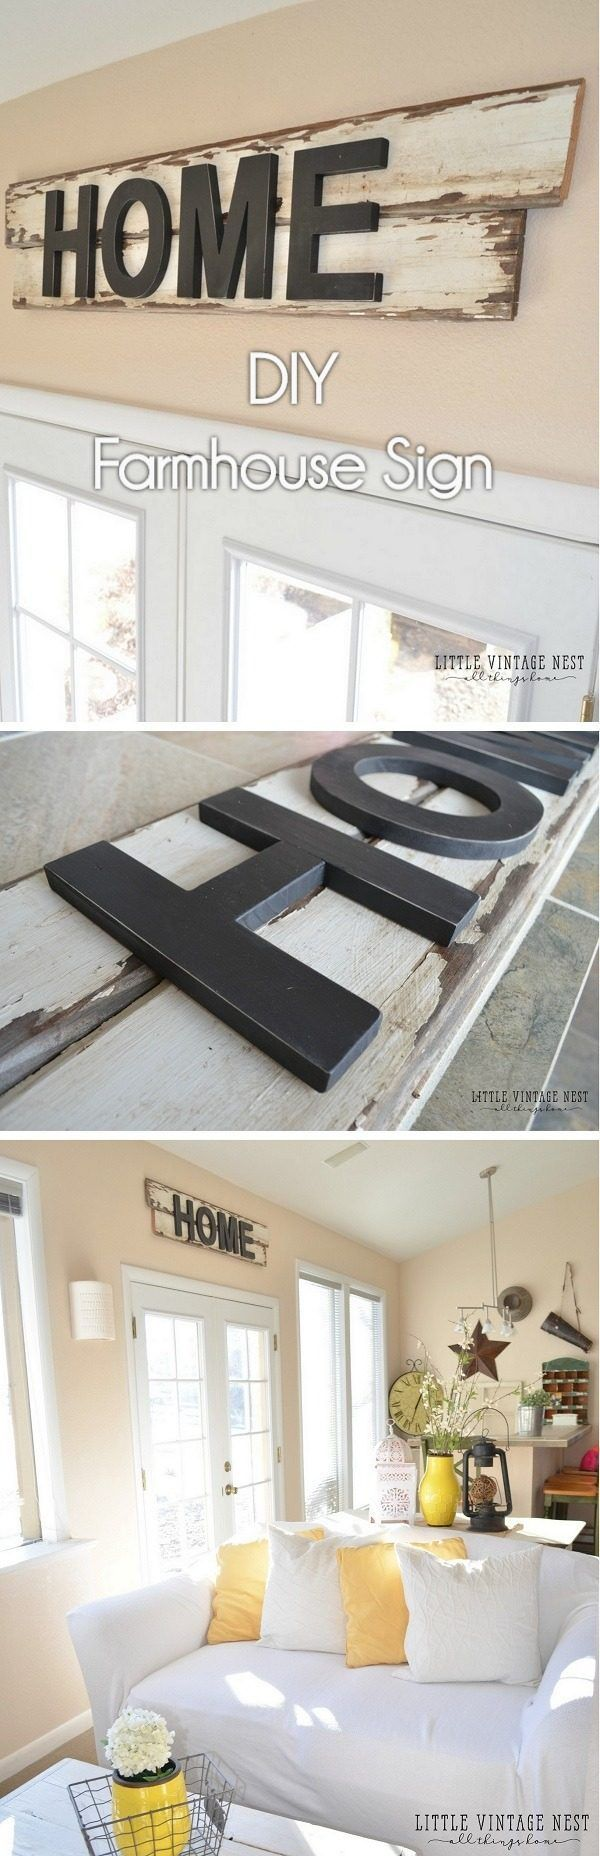 Check out how to make your own easy #DIY #farmhouse sign #HomeDecorIdeas @istandarddesign